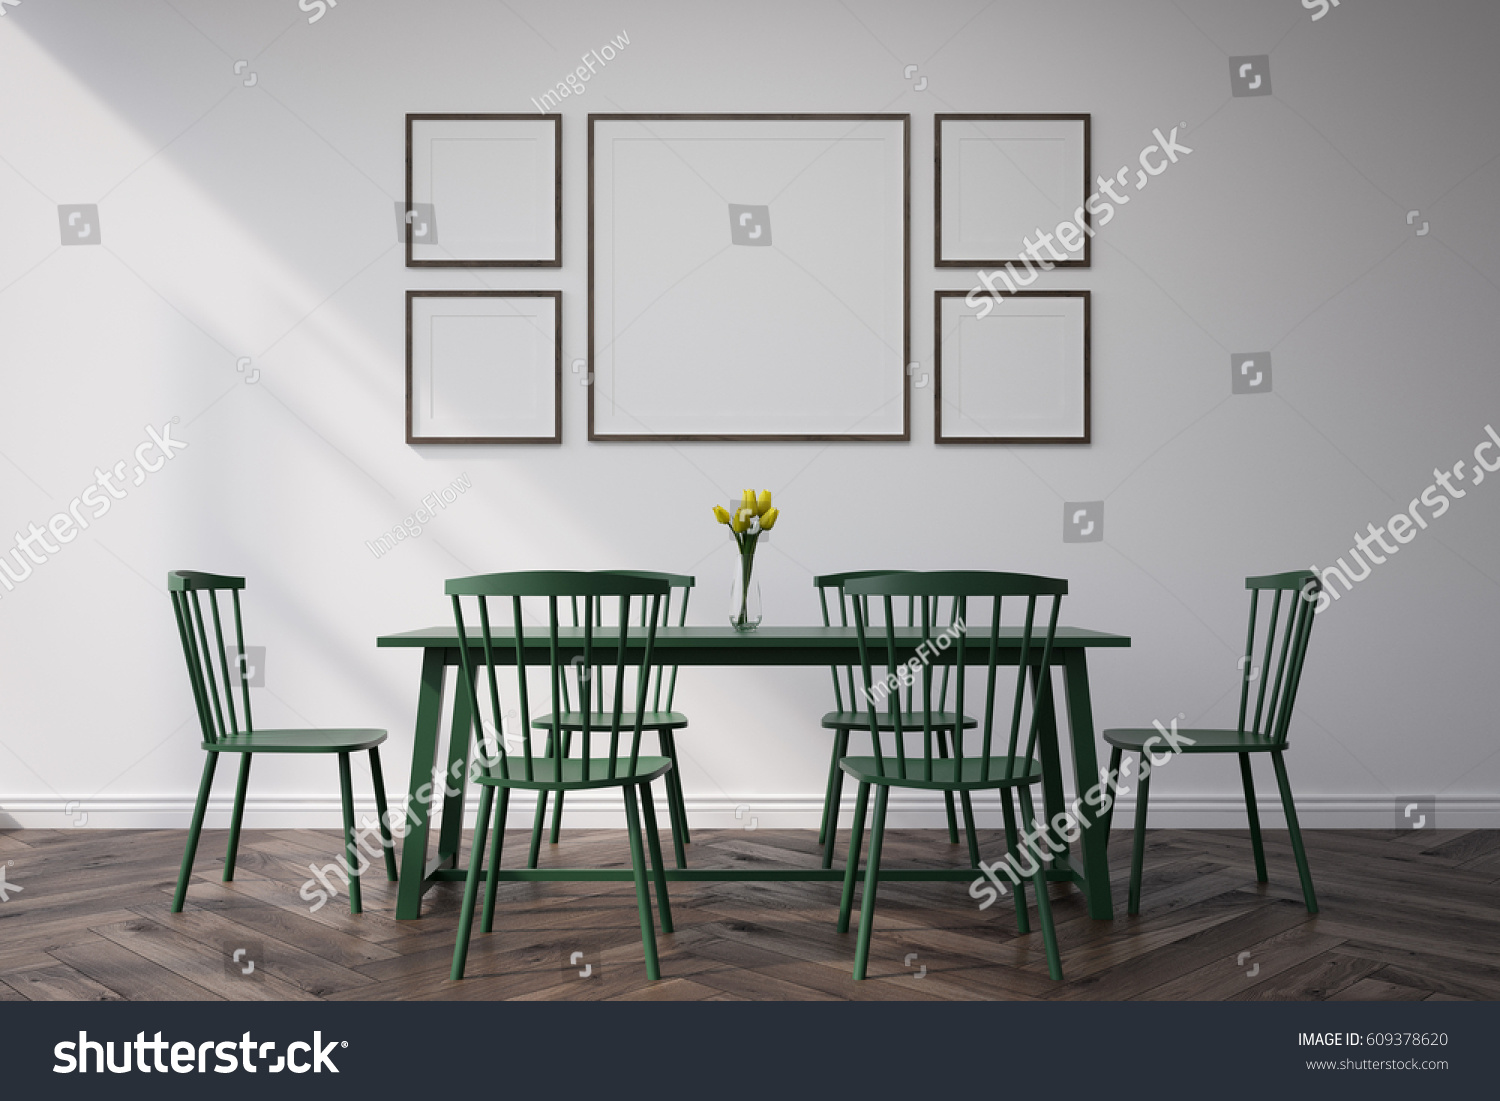 Dining room interior long table four stock illustration for What to hang on dining room walls